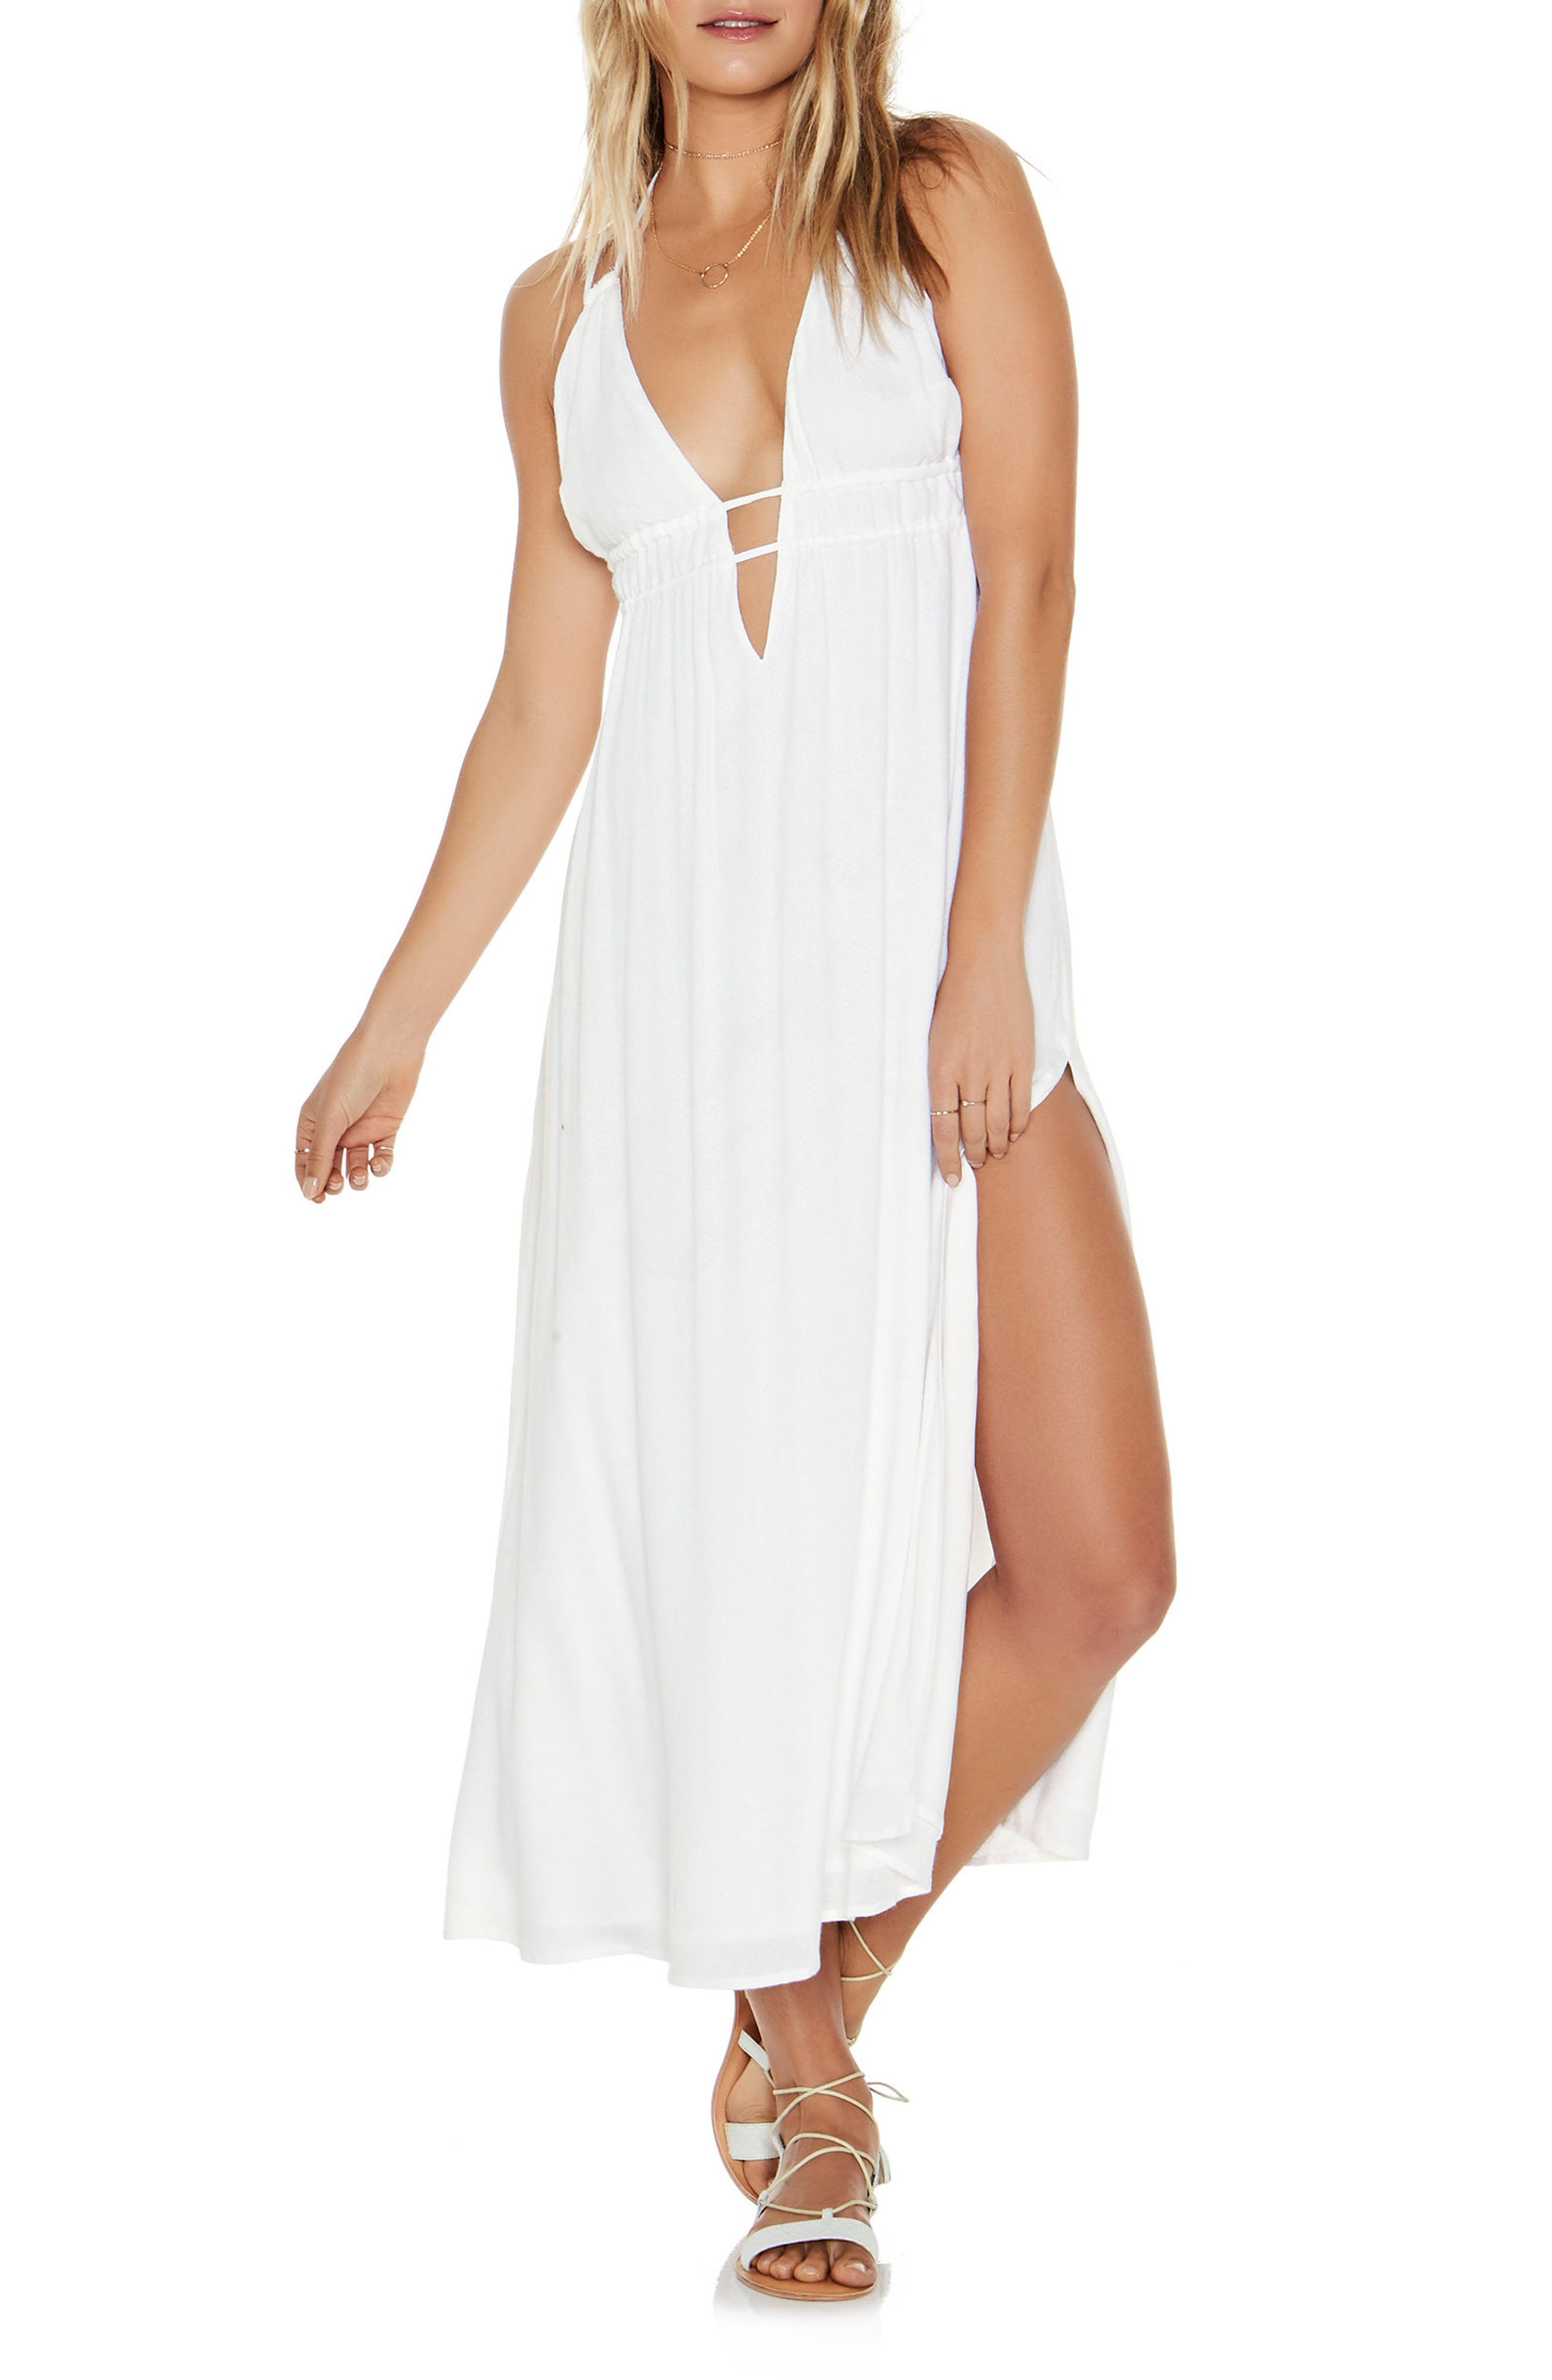 Beachside Beauty Cover-Up Dress,                         Main,                         color, 100